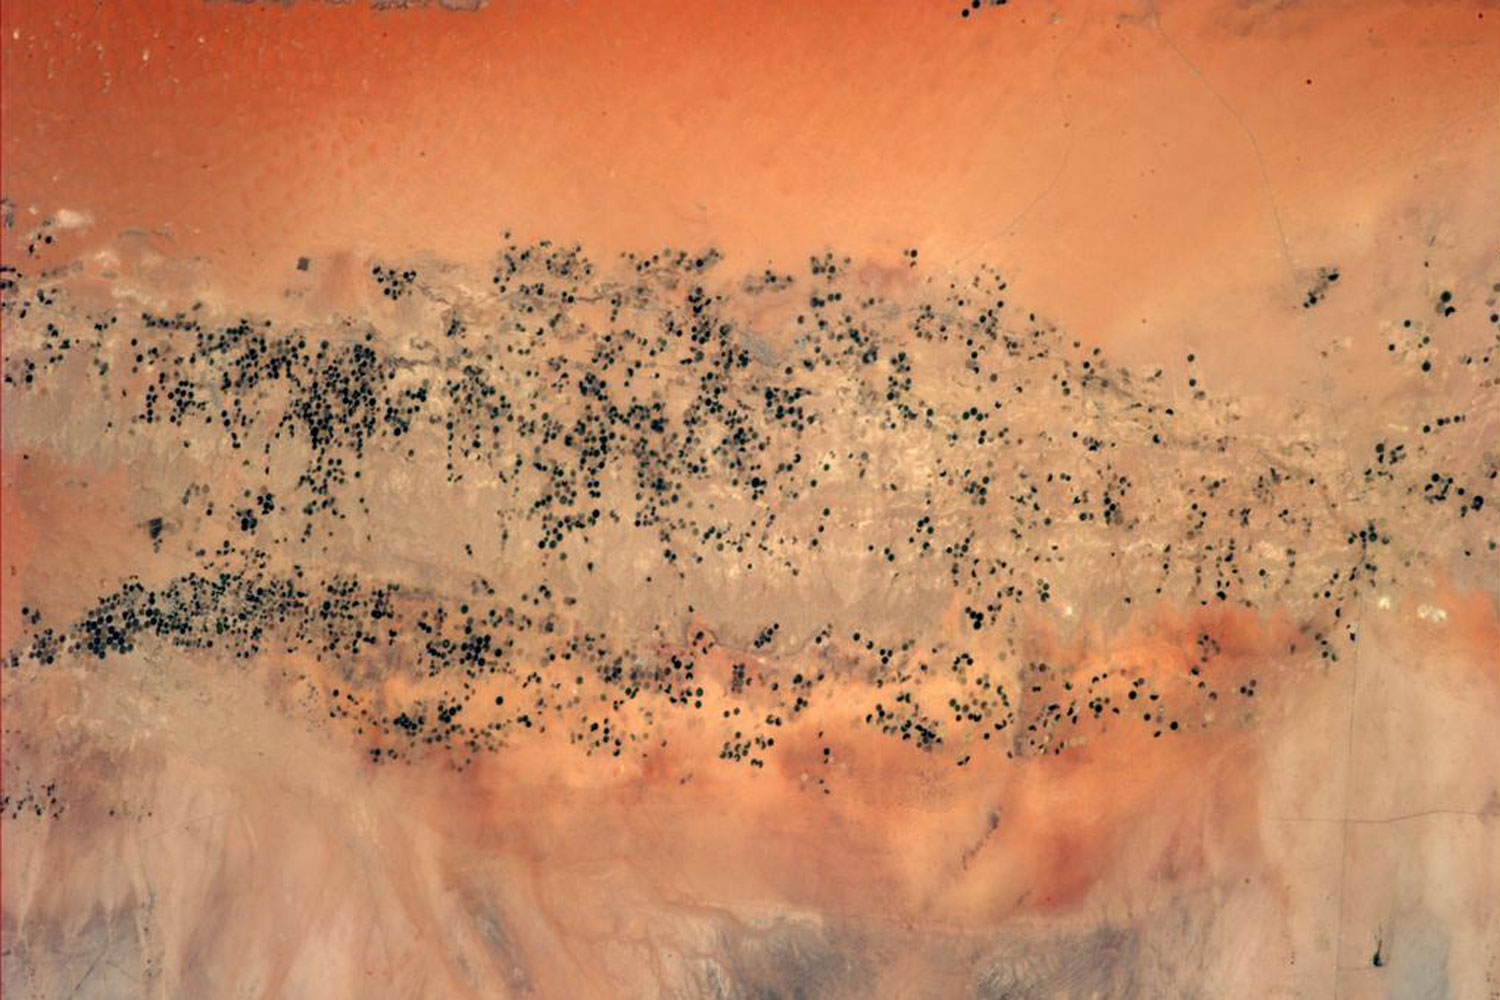 """Irrigation in the #Sahara #Desert looks like a challenging task from up here... #BlueDot""—Alexander Gerst via Twitter on July 28, 2014"